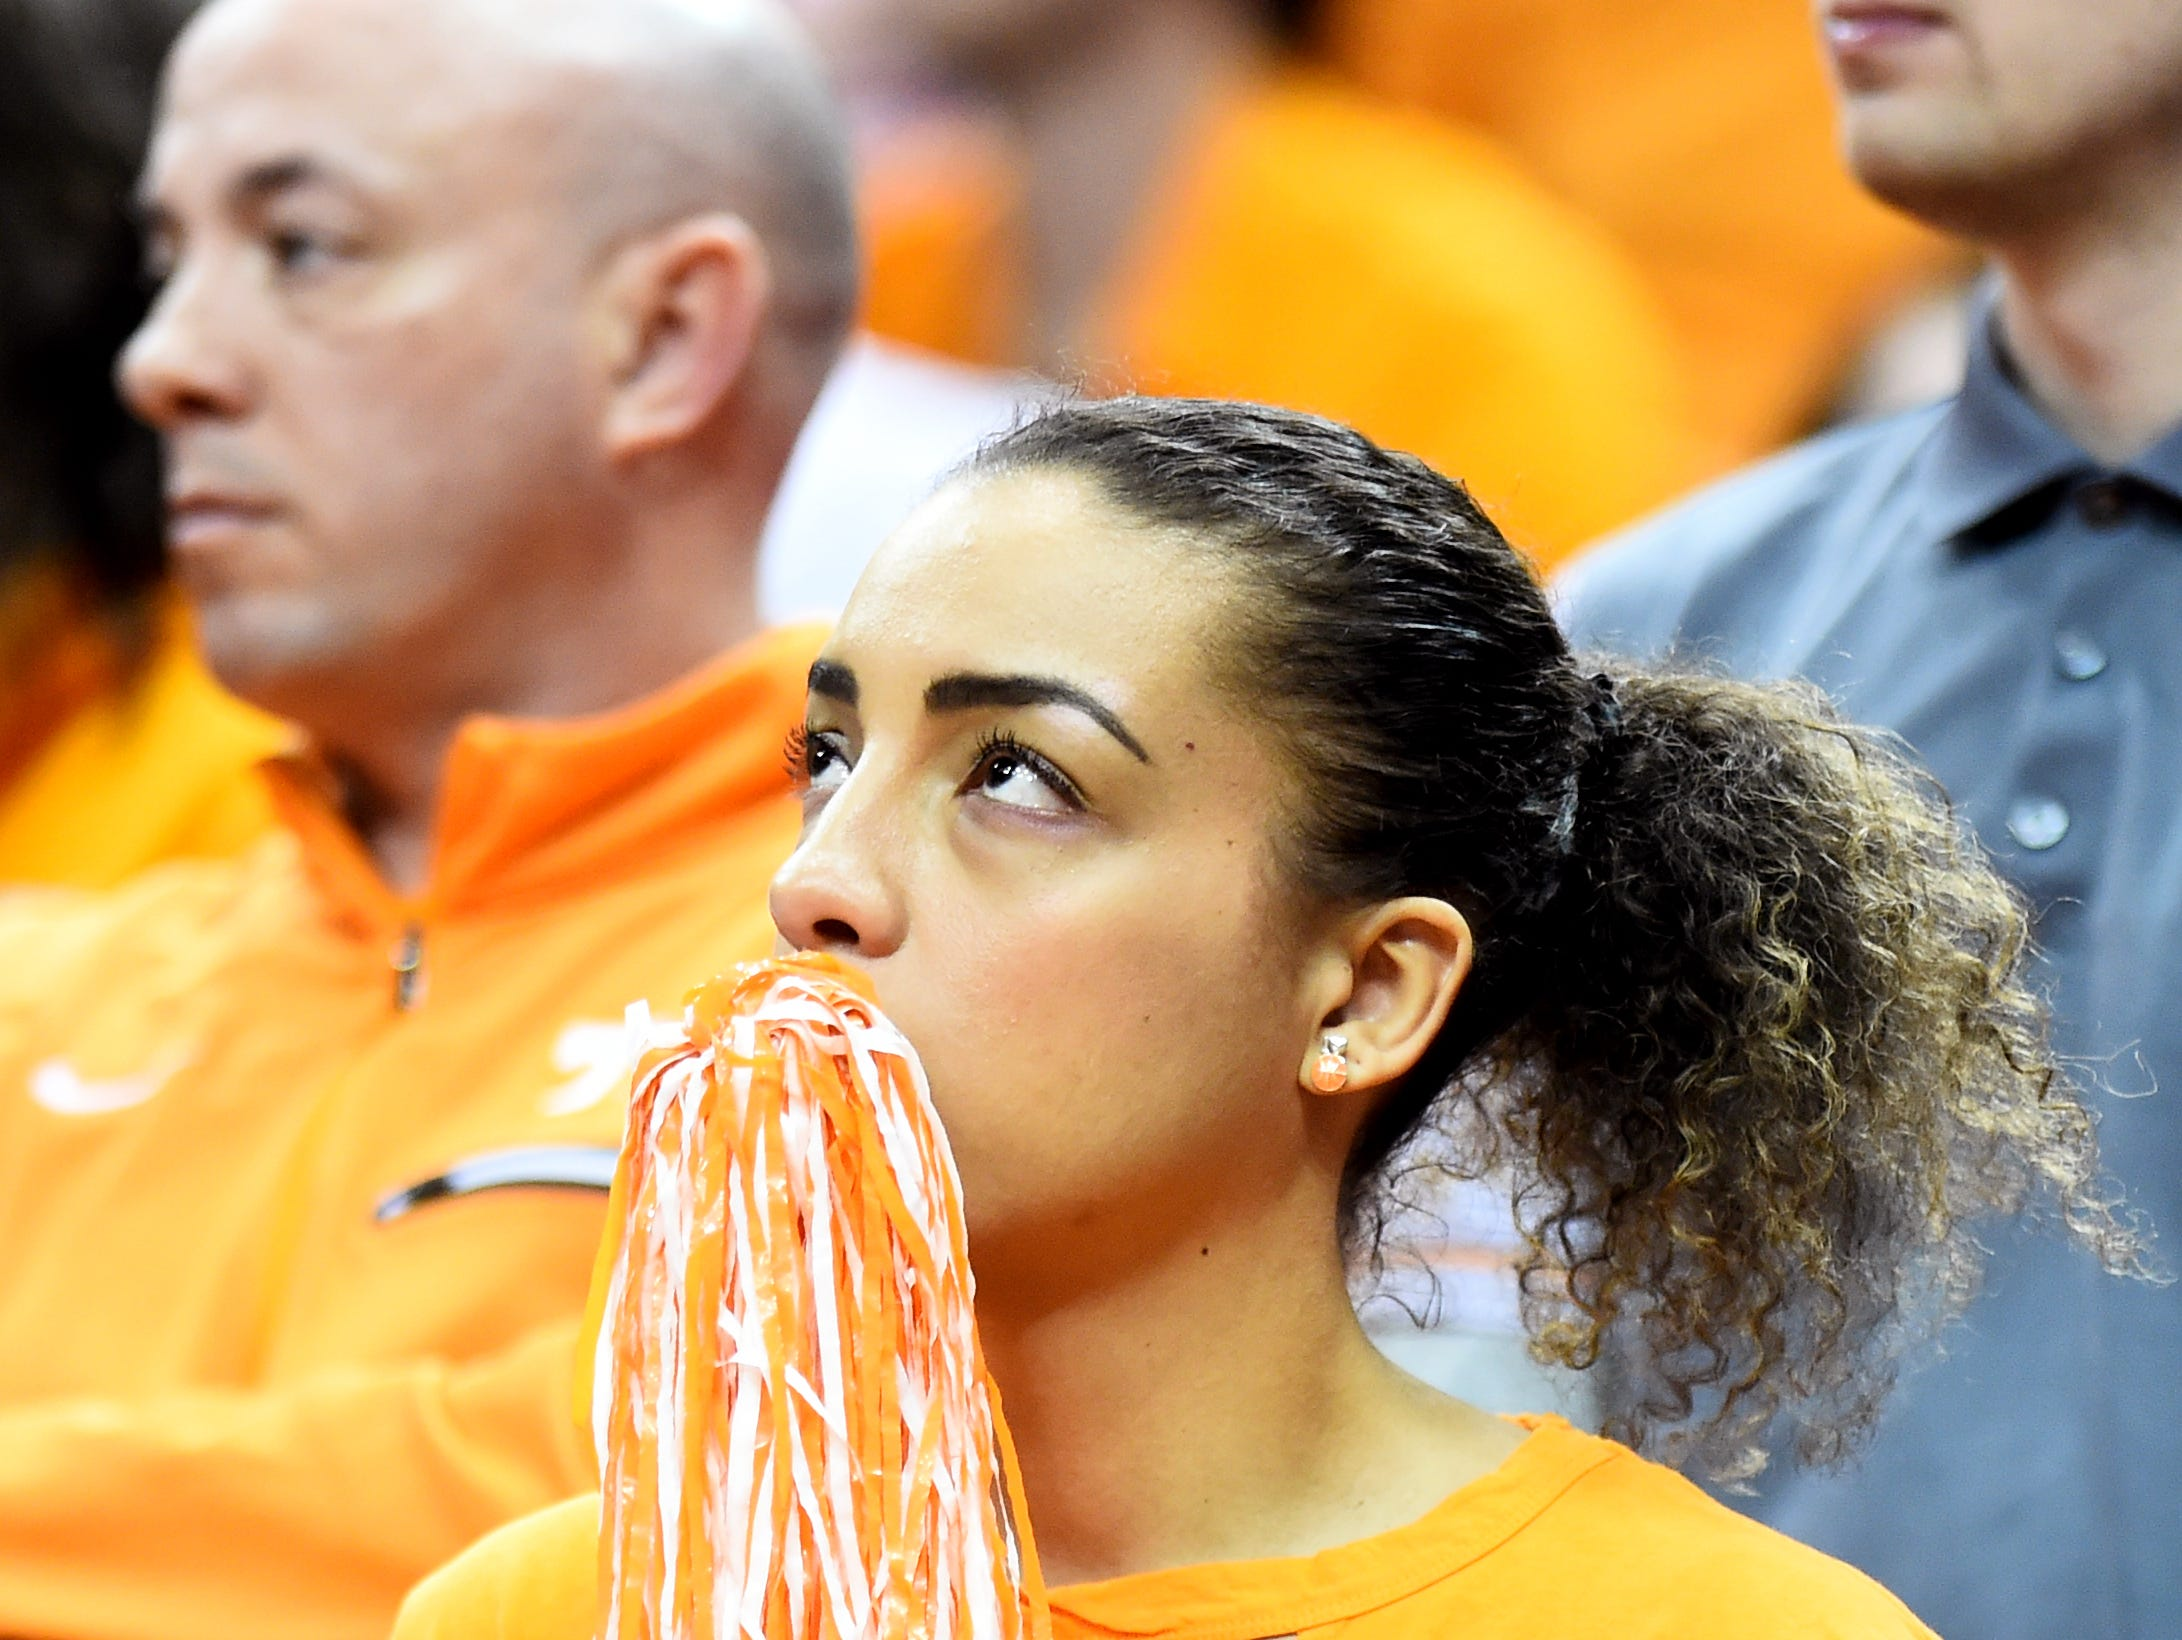 Tennessee fans watch on in the last seconds of the Tennessee VolunteersÕ basketball Sweet 16 game against the Purdue Boilermakers in the NCAA Tournament held at the KFC Yum! Center in Louisville, Ky., on Thursday, March 28, 2019.